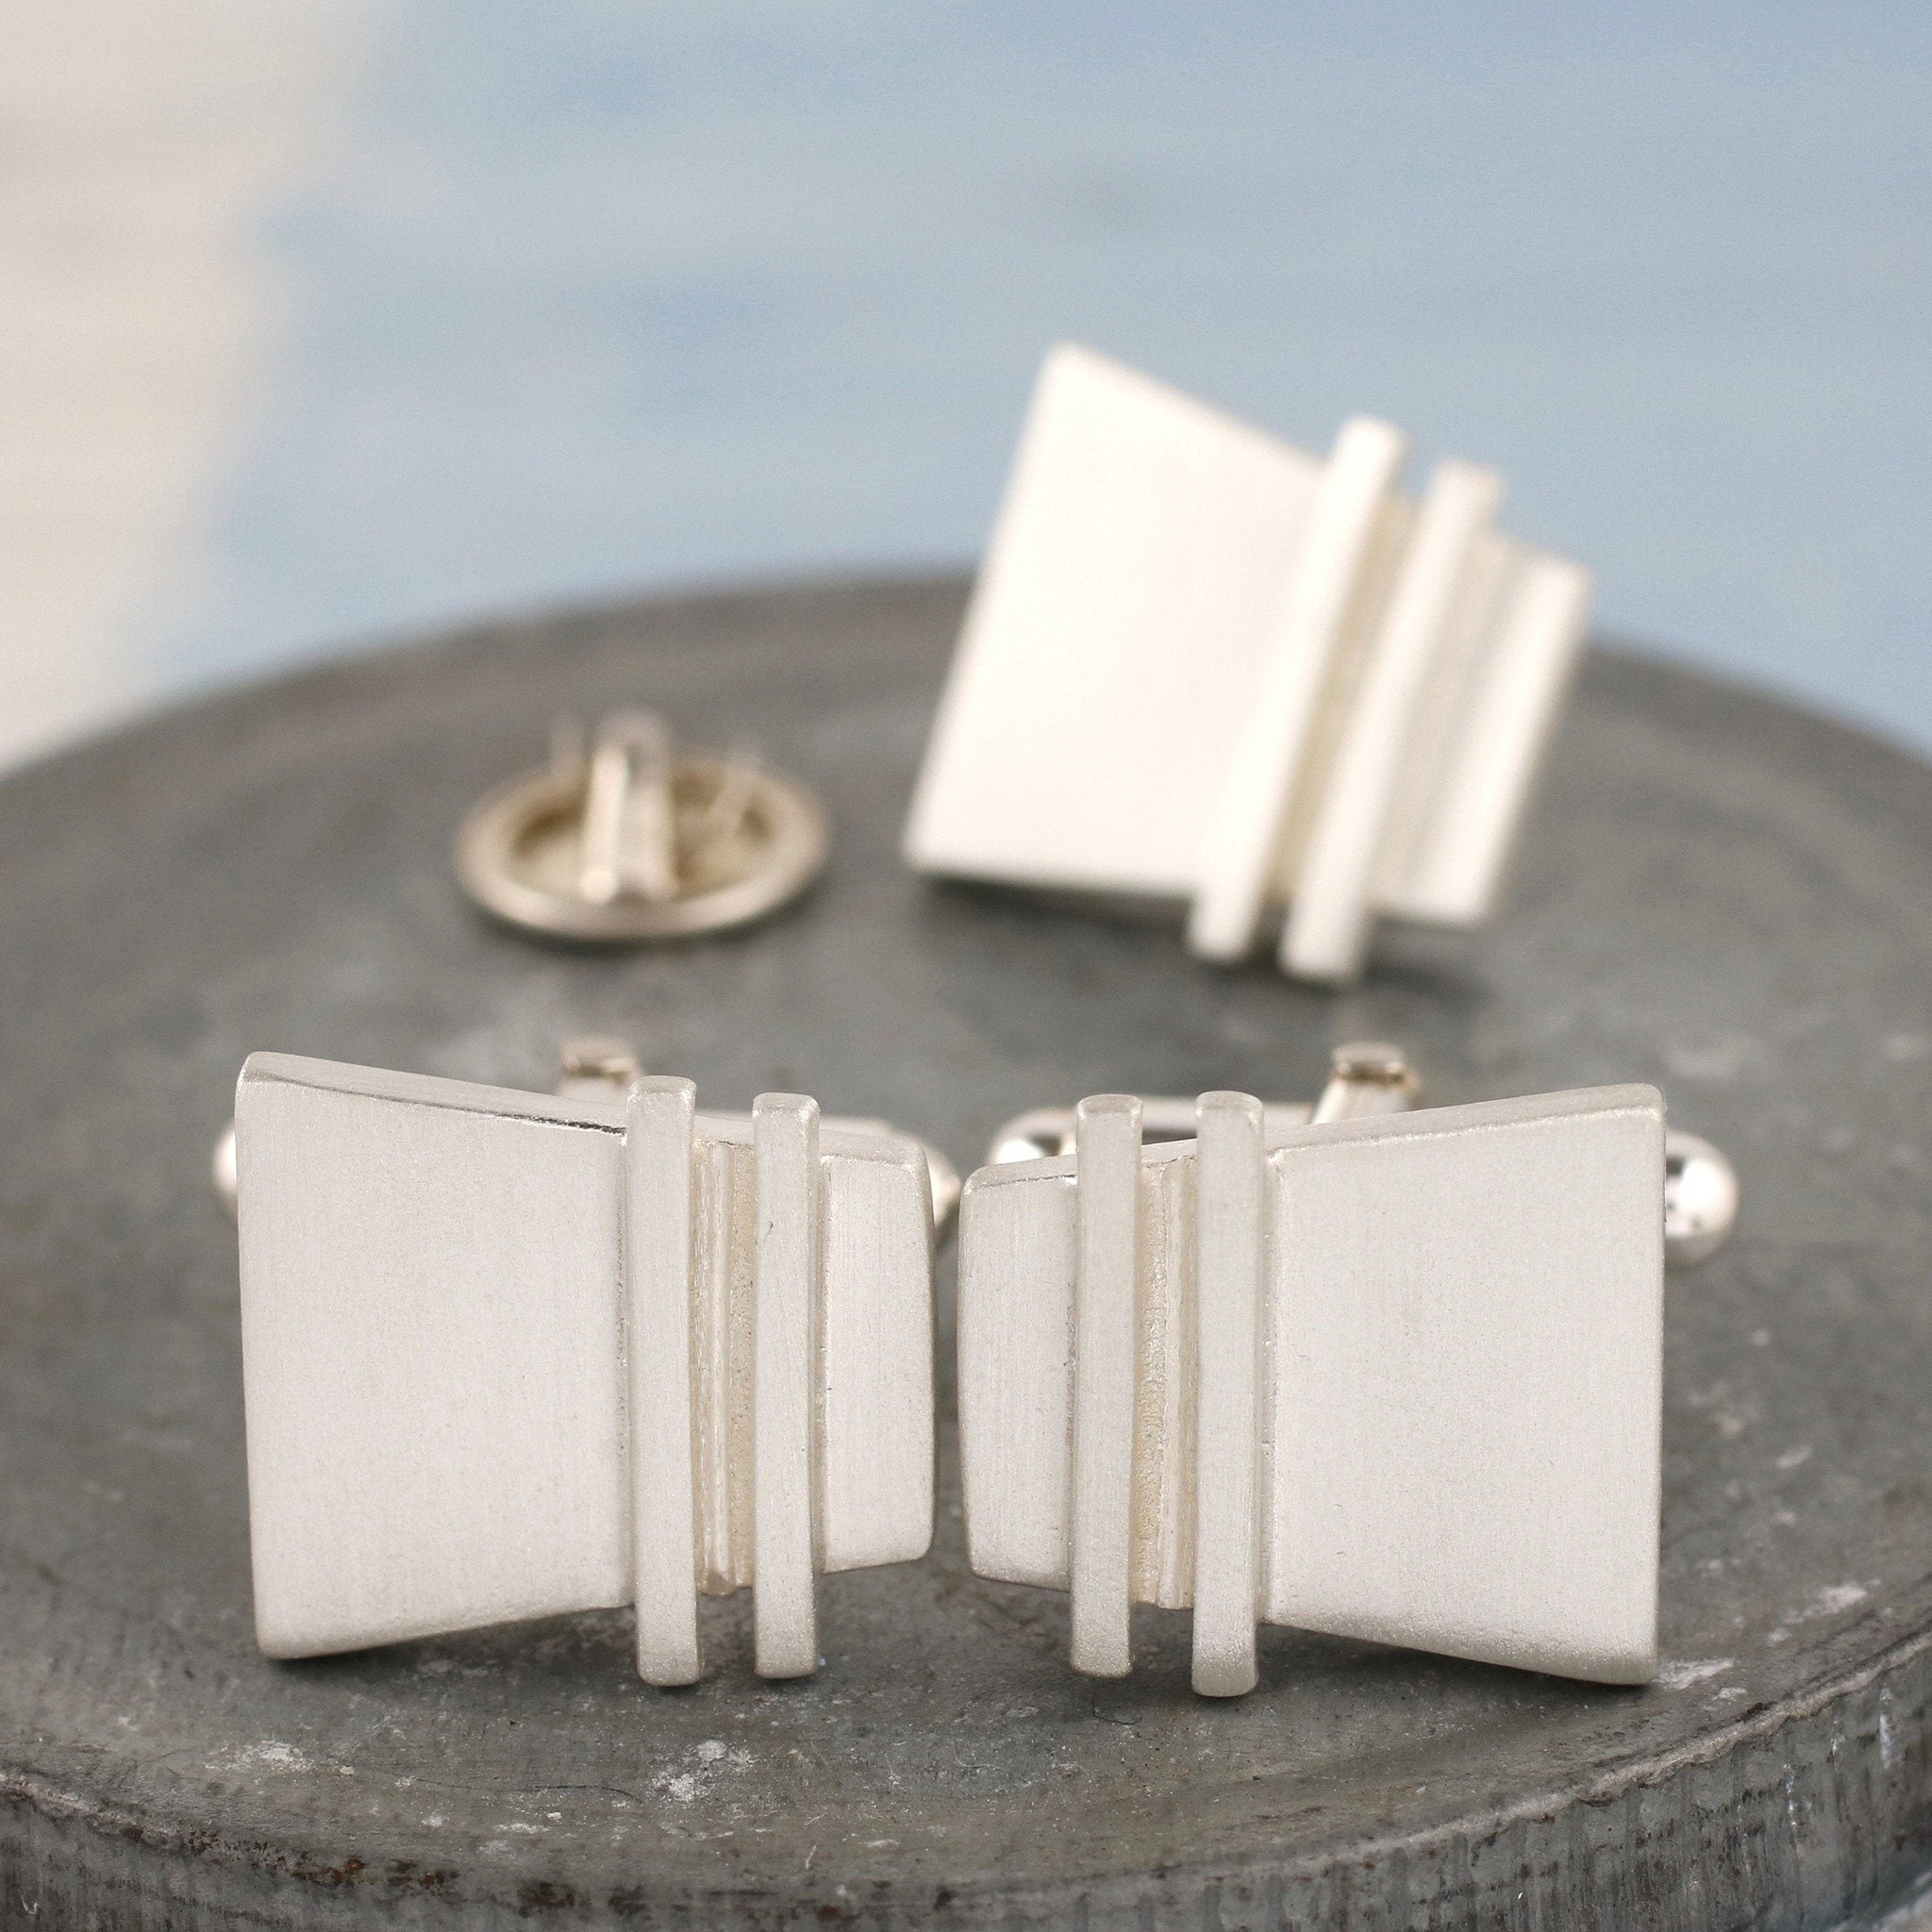 Silver cufflink and tie pin set